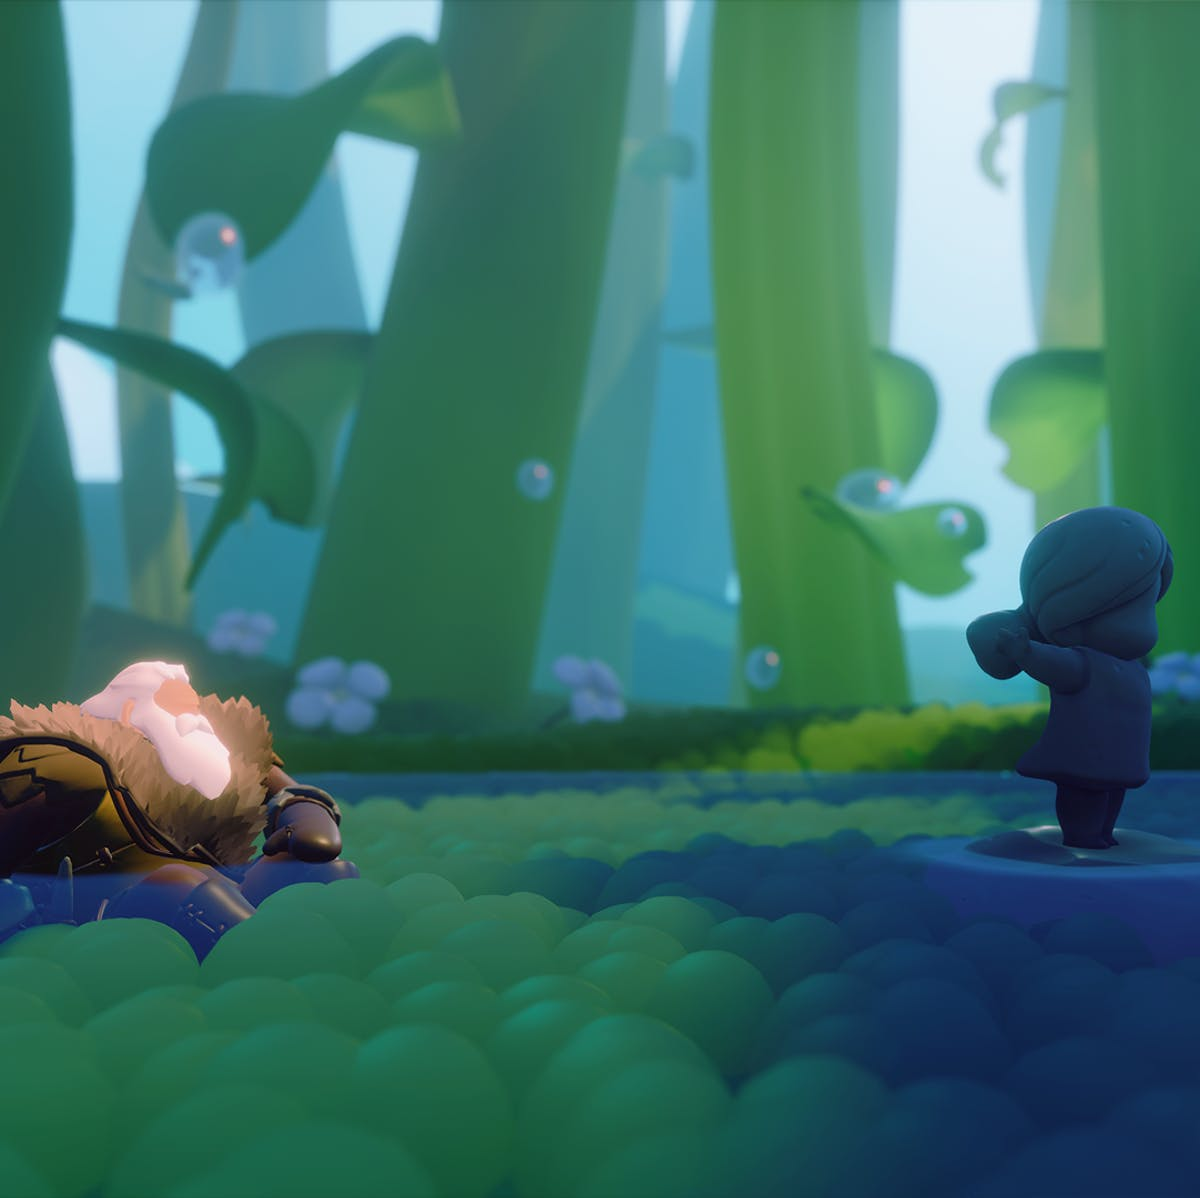 'Arise: A Simple Story's time travel mechanic is a big leap for platformers